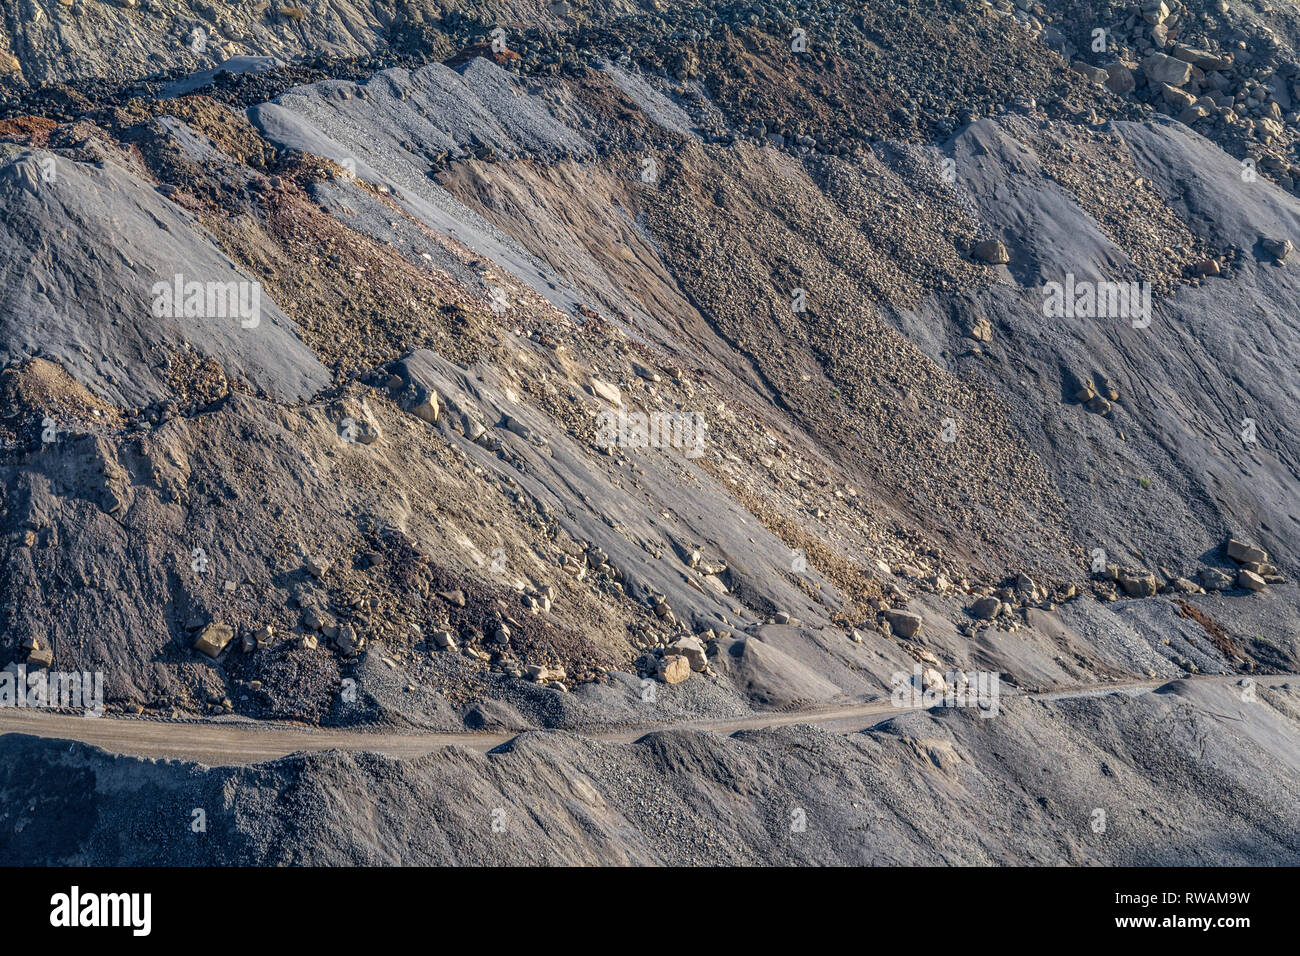 full frame hillside spoil heap scenery Stock Photo